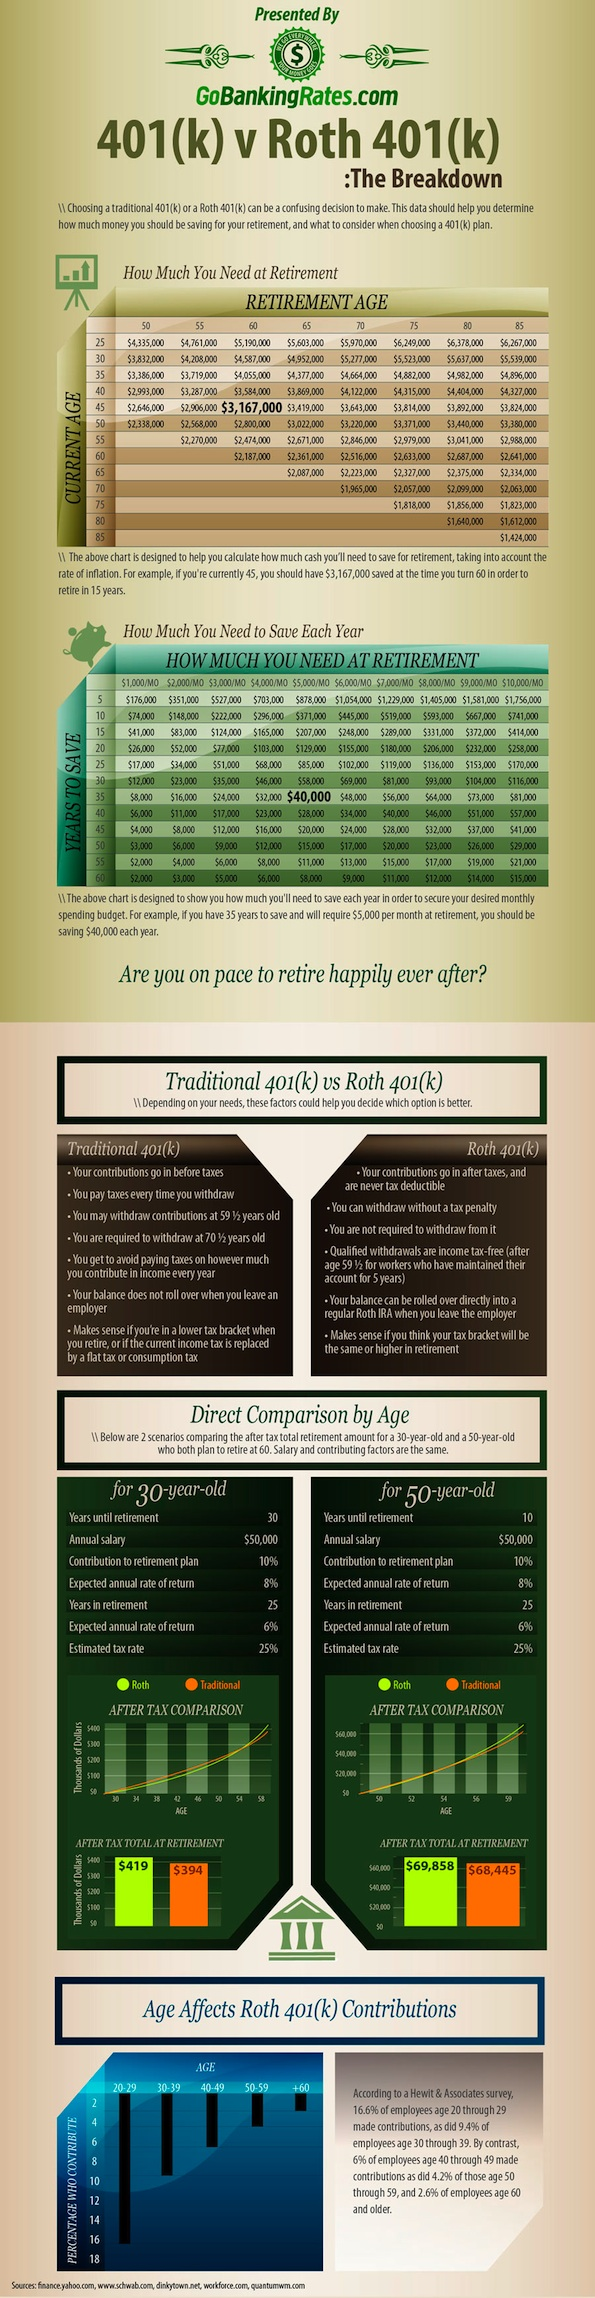 How Much Do You Need to Retire? [Infographic]